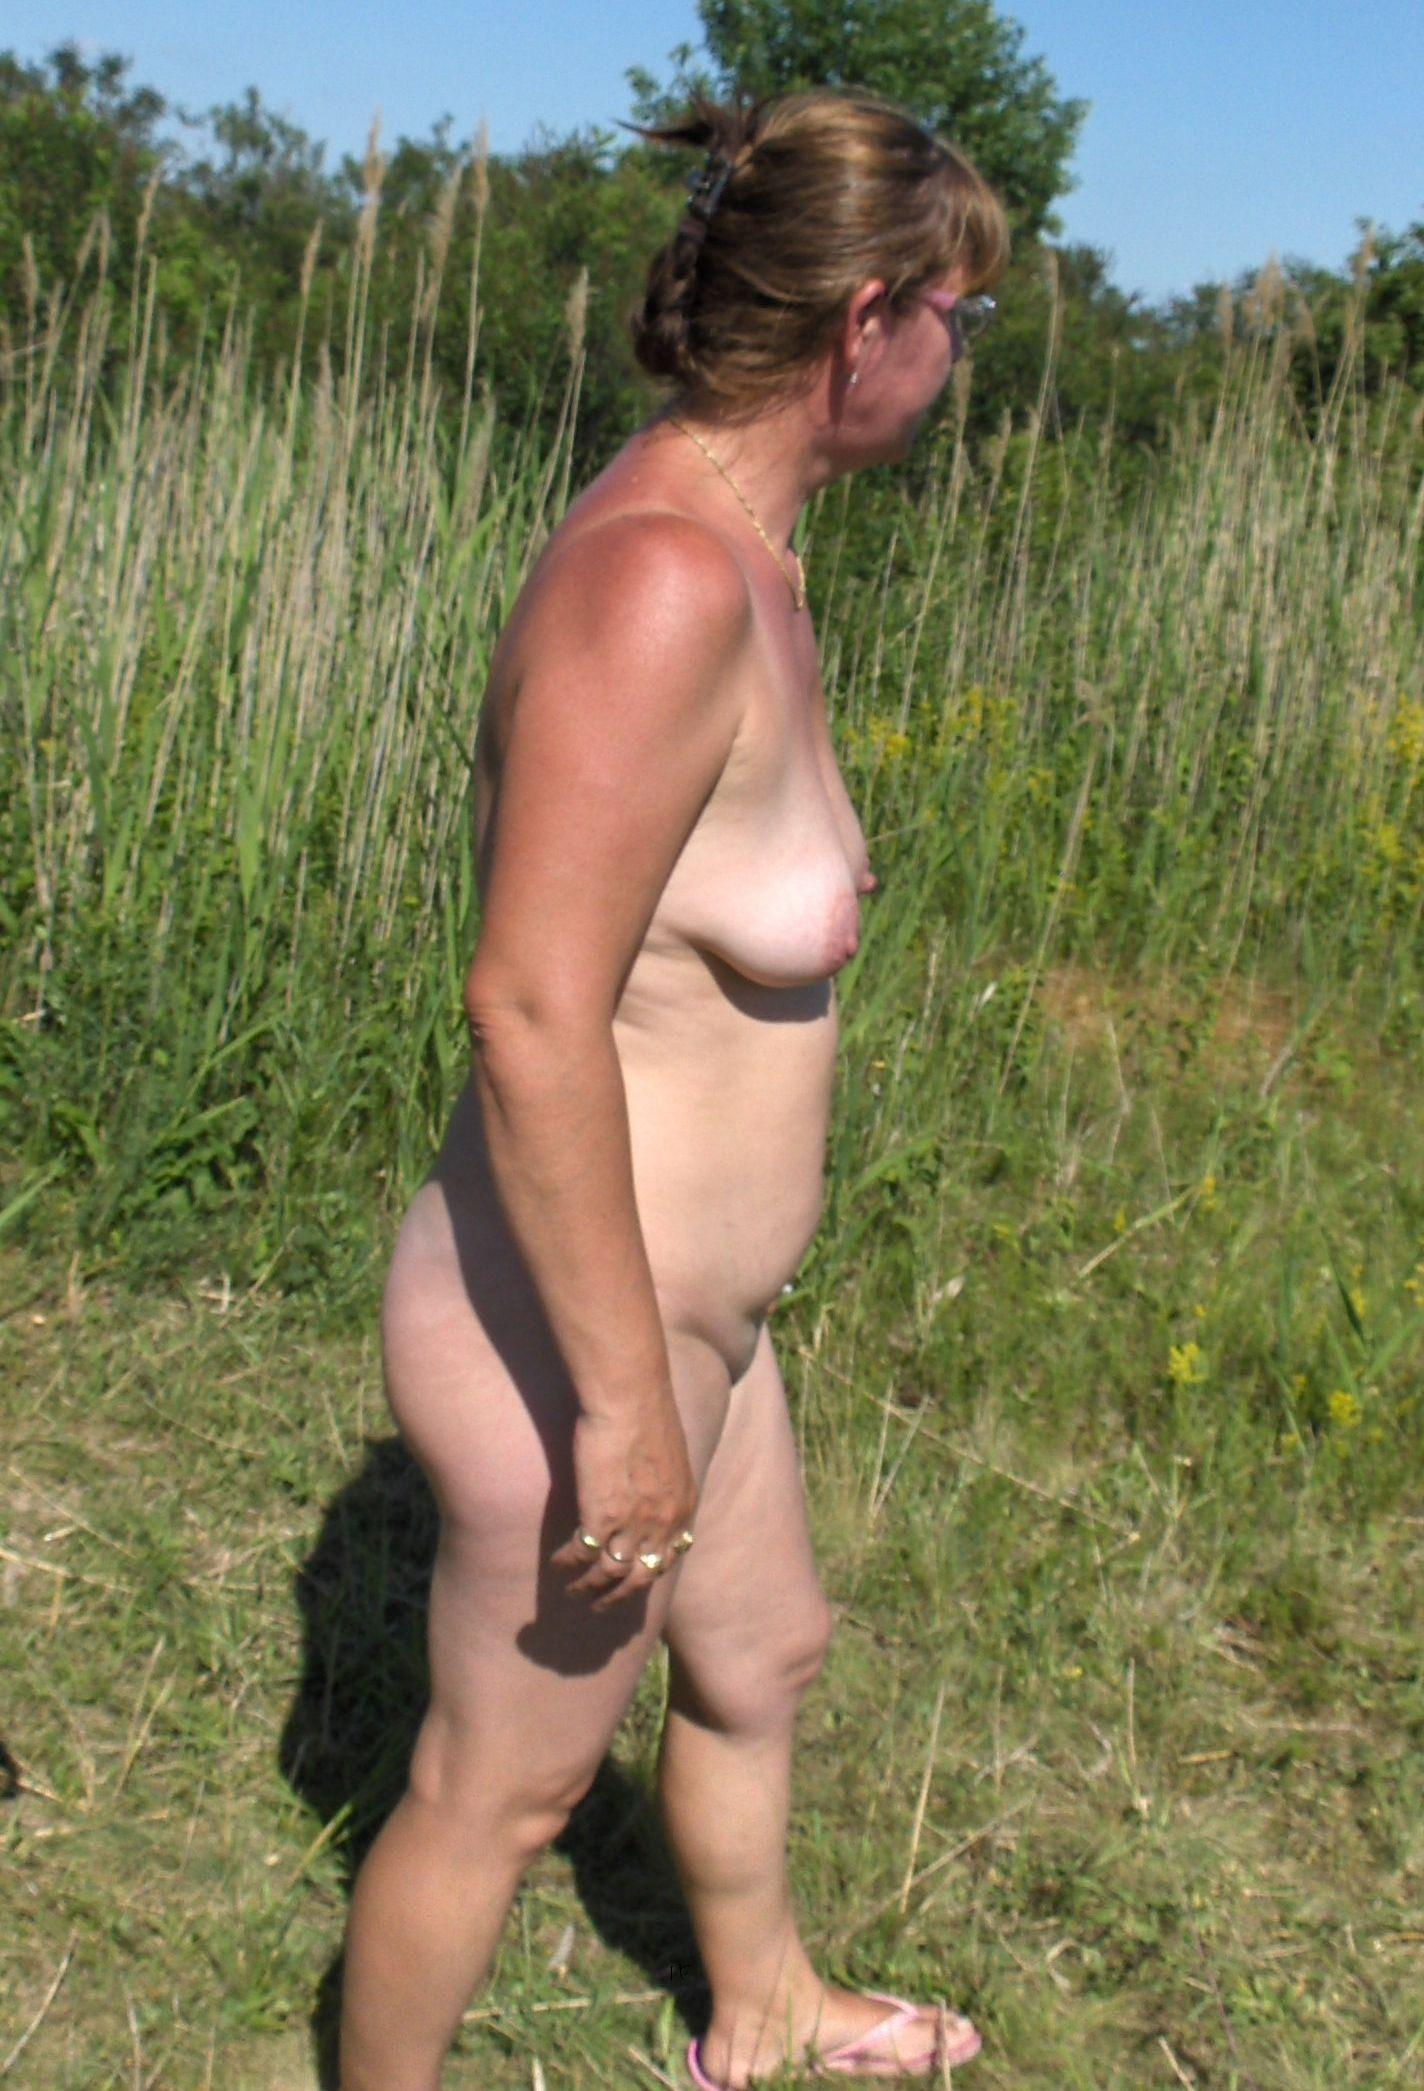 Doris Naked Outdoors At Homemoviestubecom-5207